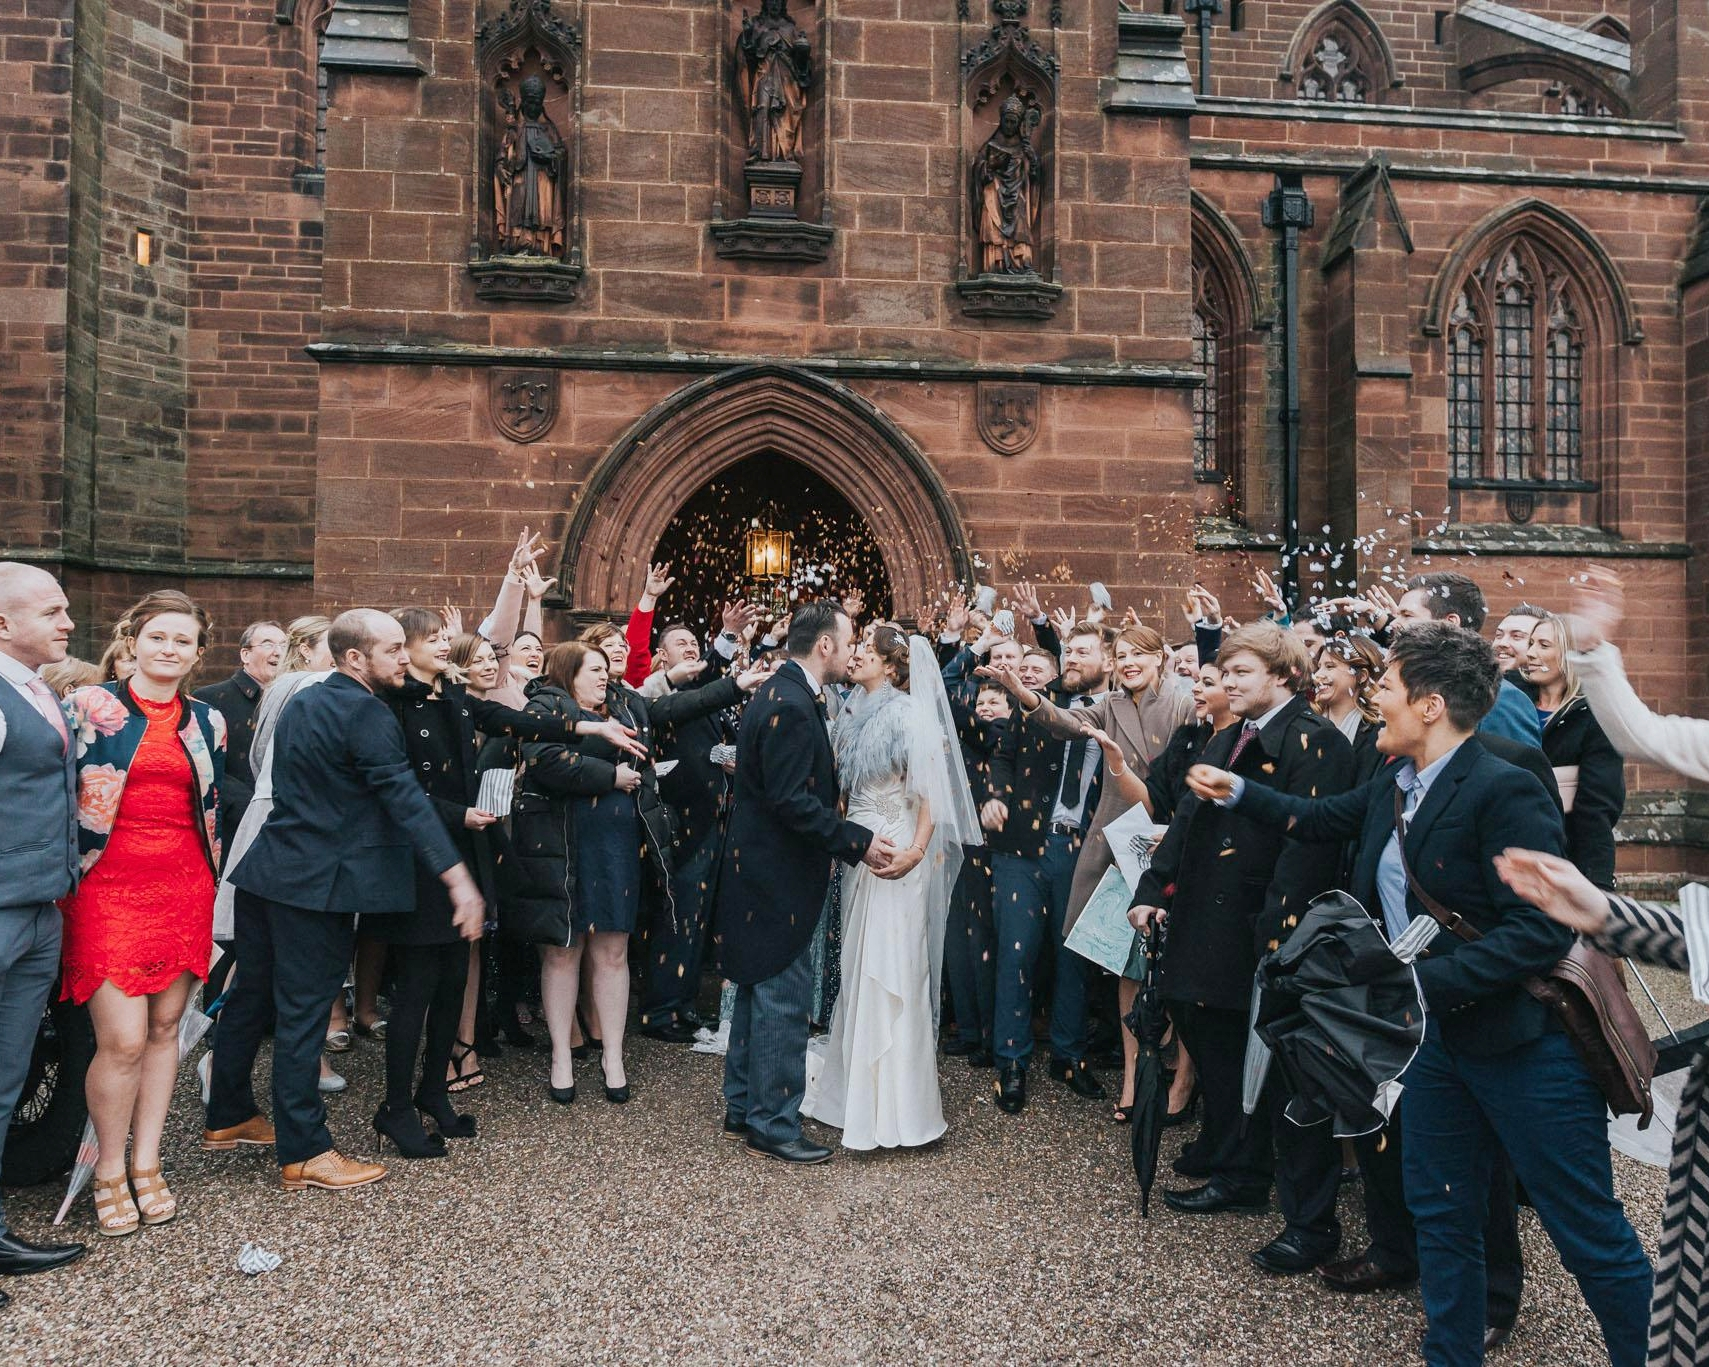 dramatic image for the confetti wedding photography in Cheshire for this rustic and vintage wedding